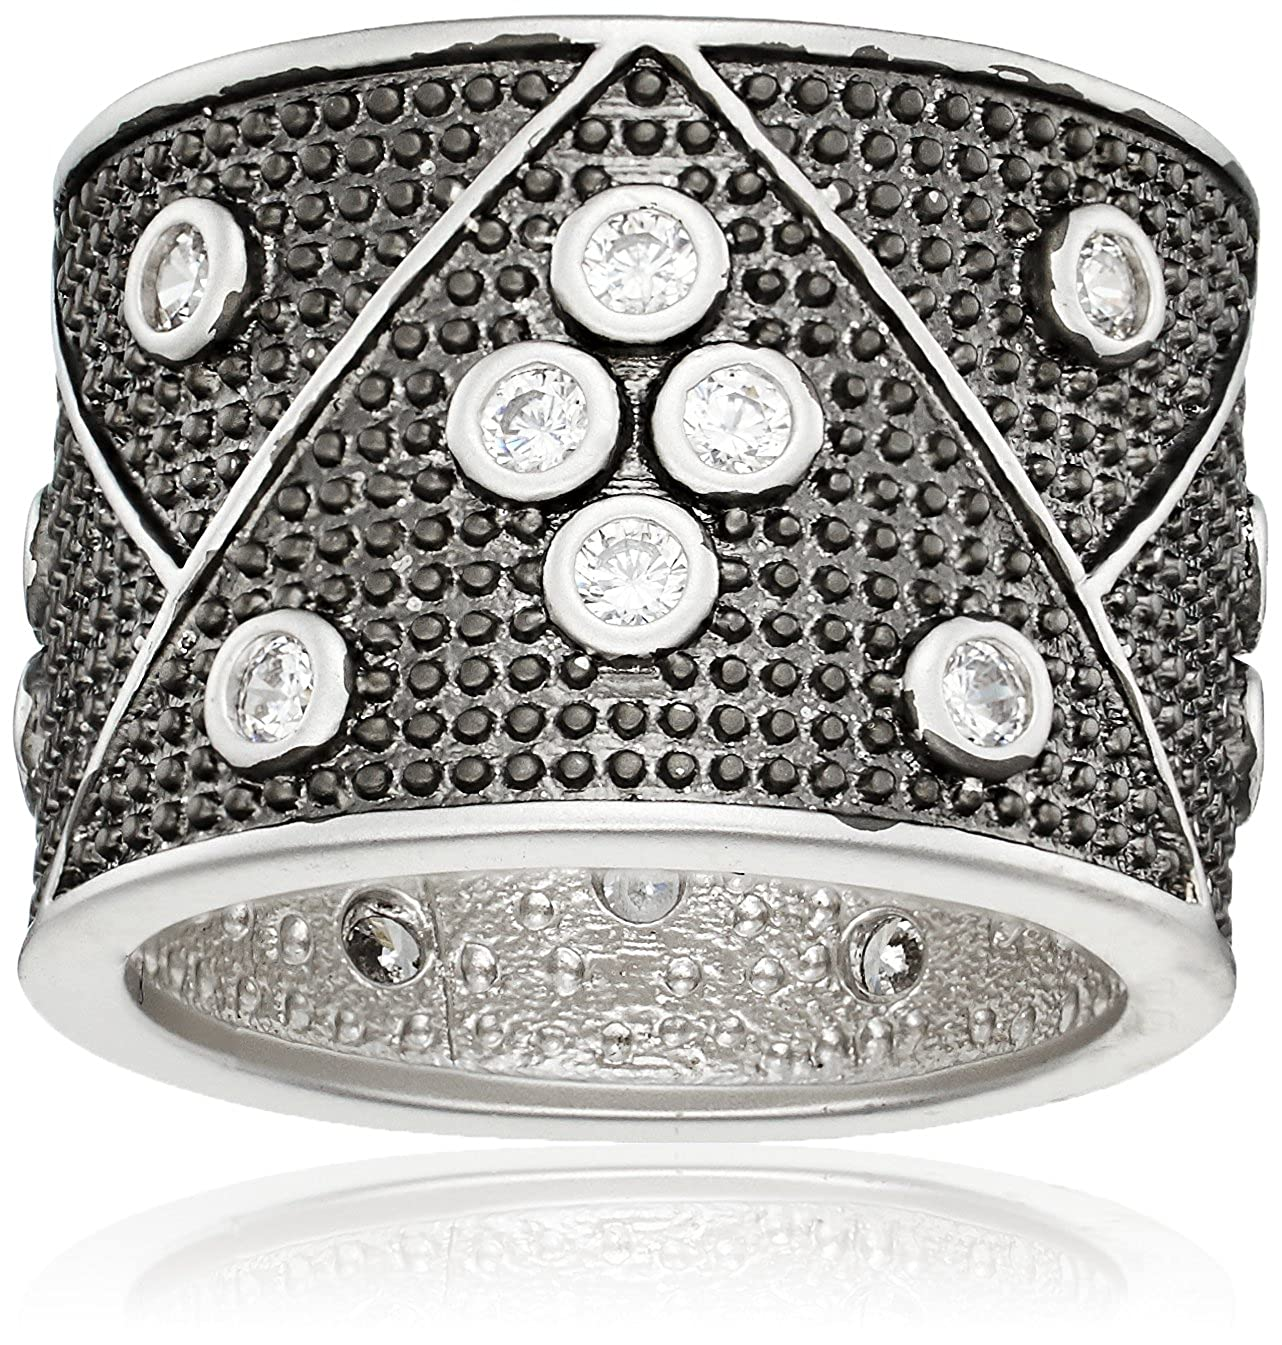 Freida Rothman Womens Signature Industrial Finish Wide Band Ring Black & White Size 6 IFPKZR06-6